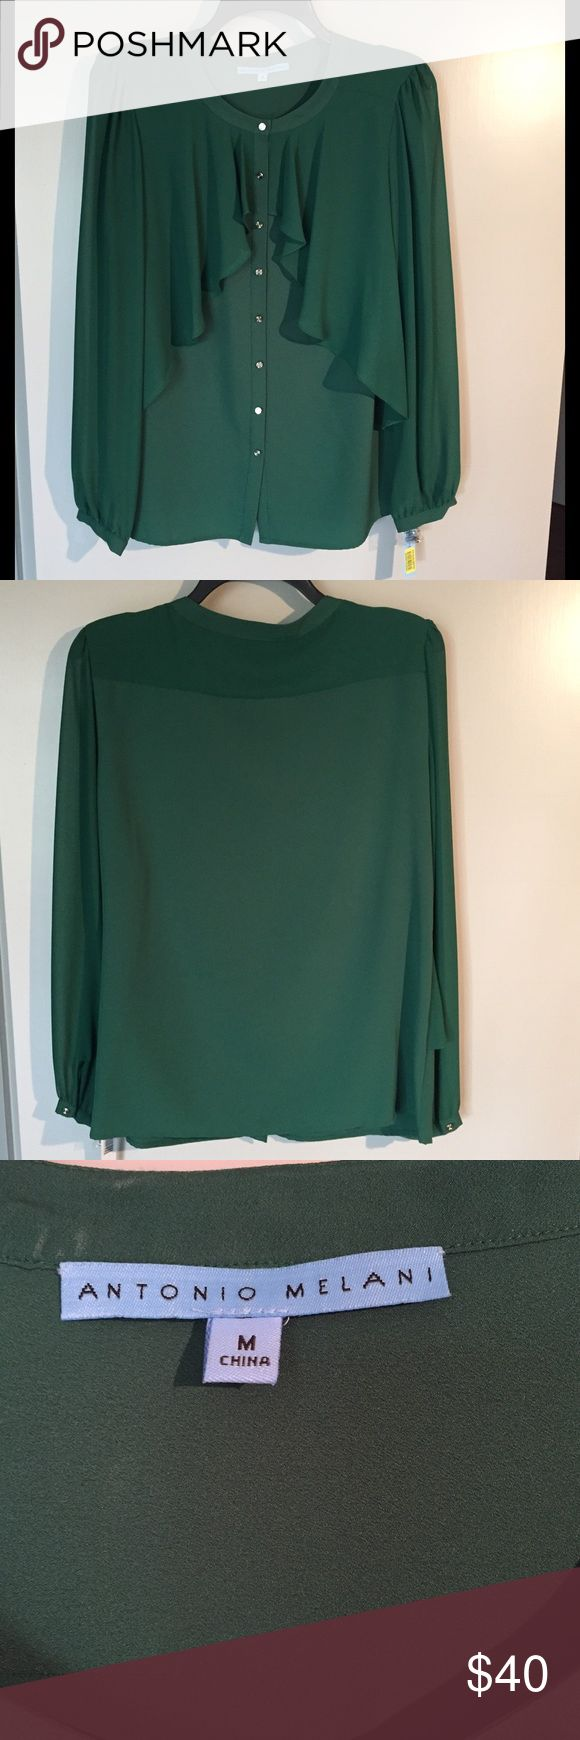 Antonio Melani Emerald Green Blouse Antonio Melani emerald green blouse with  gold buttons, beautiful ruffle and somewhat sheer sleeves. Great for work or going out. 100% Polyester. New with tags! ANTONIO MELANI Tops Blouses